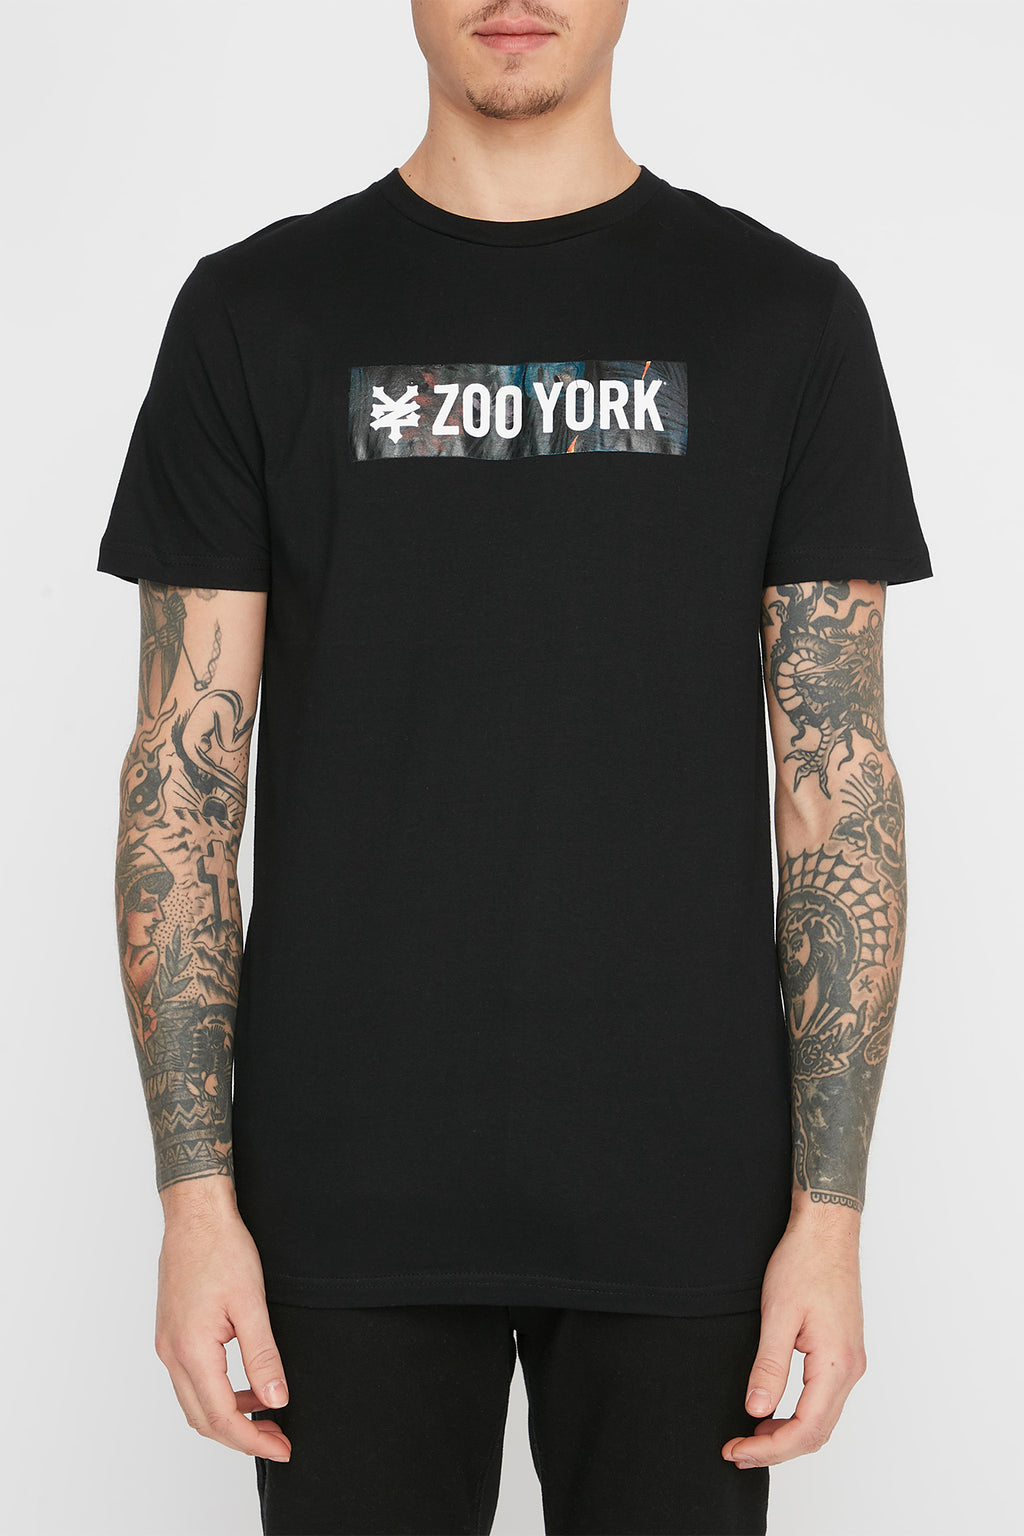 Zoo York Mens Floral Box Logo T-Shirt